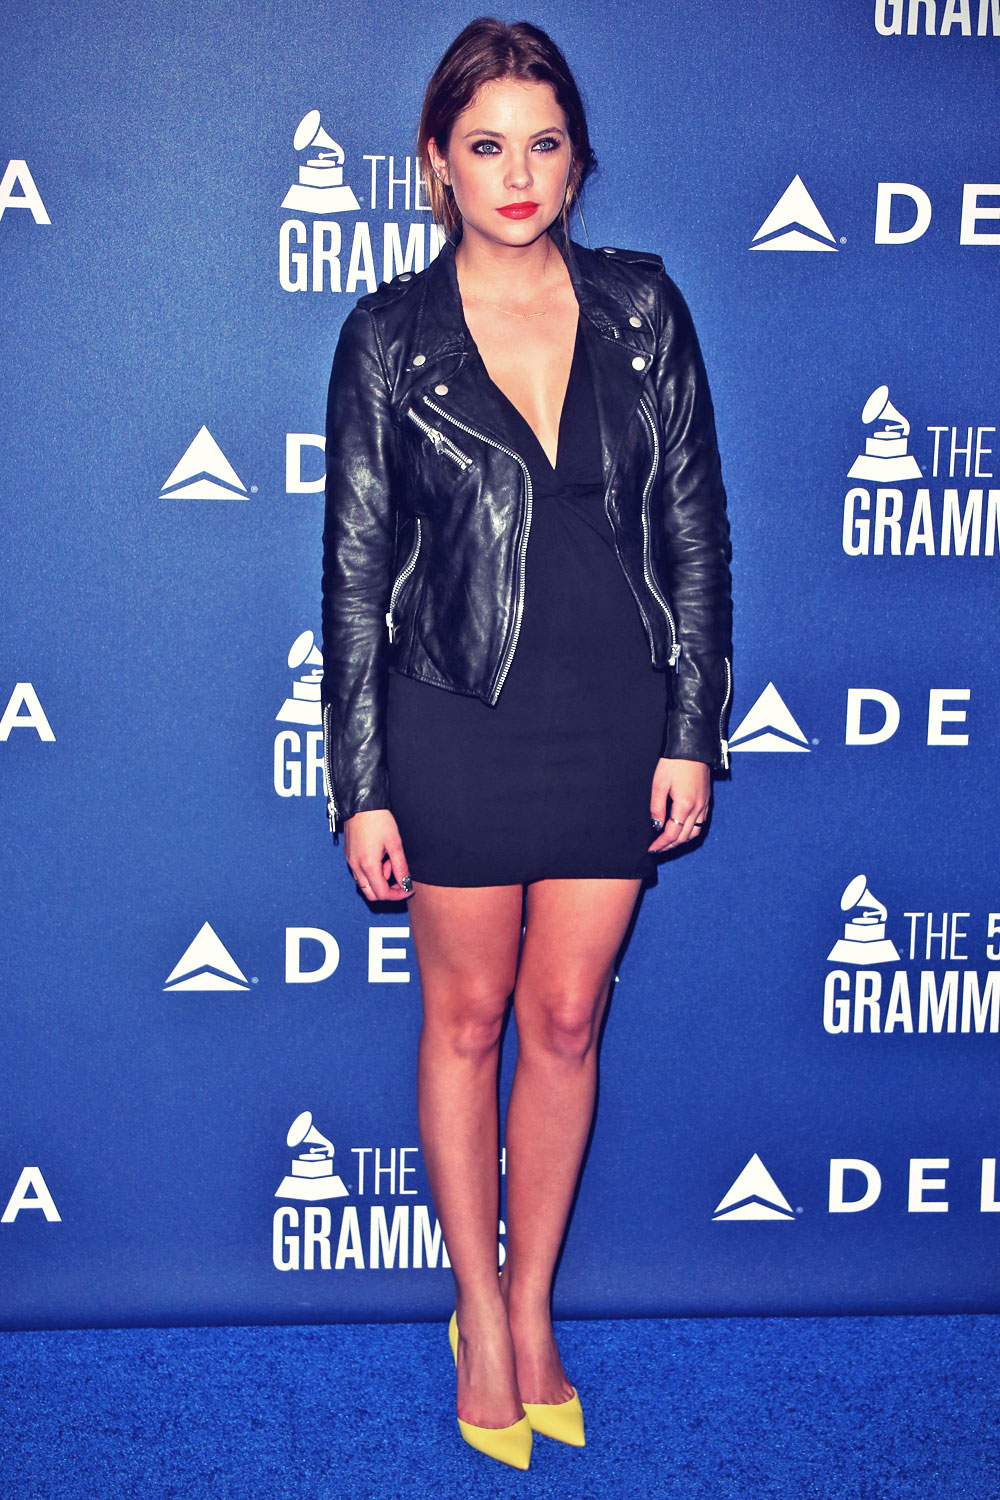 Ashley Benson attends Delta Air Lines 2014 Grammy Weekend